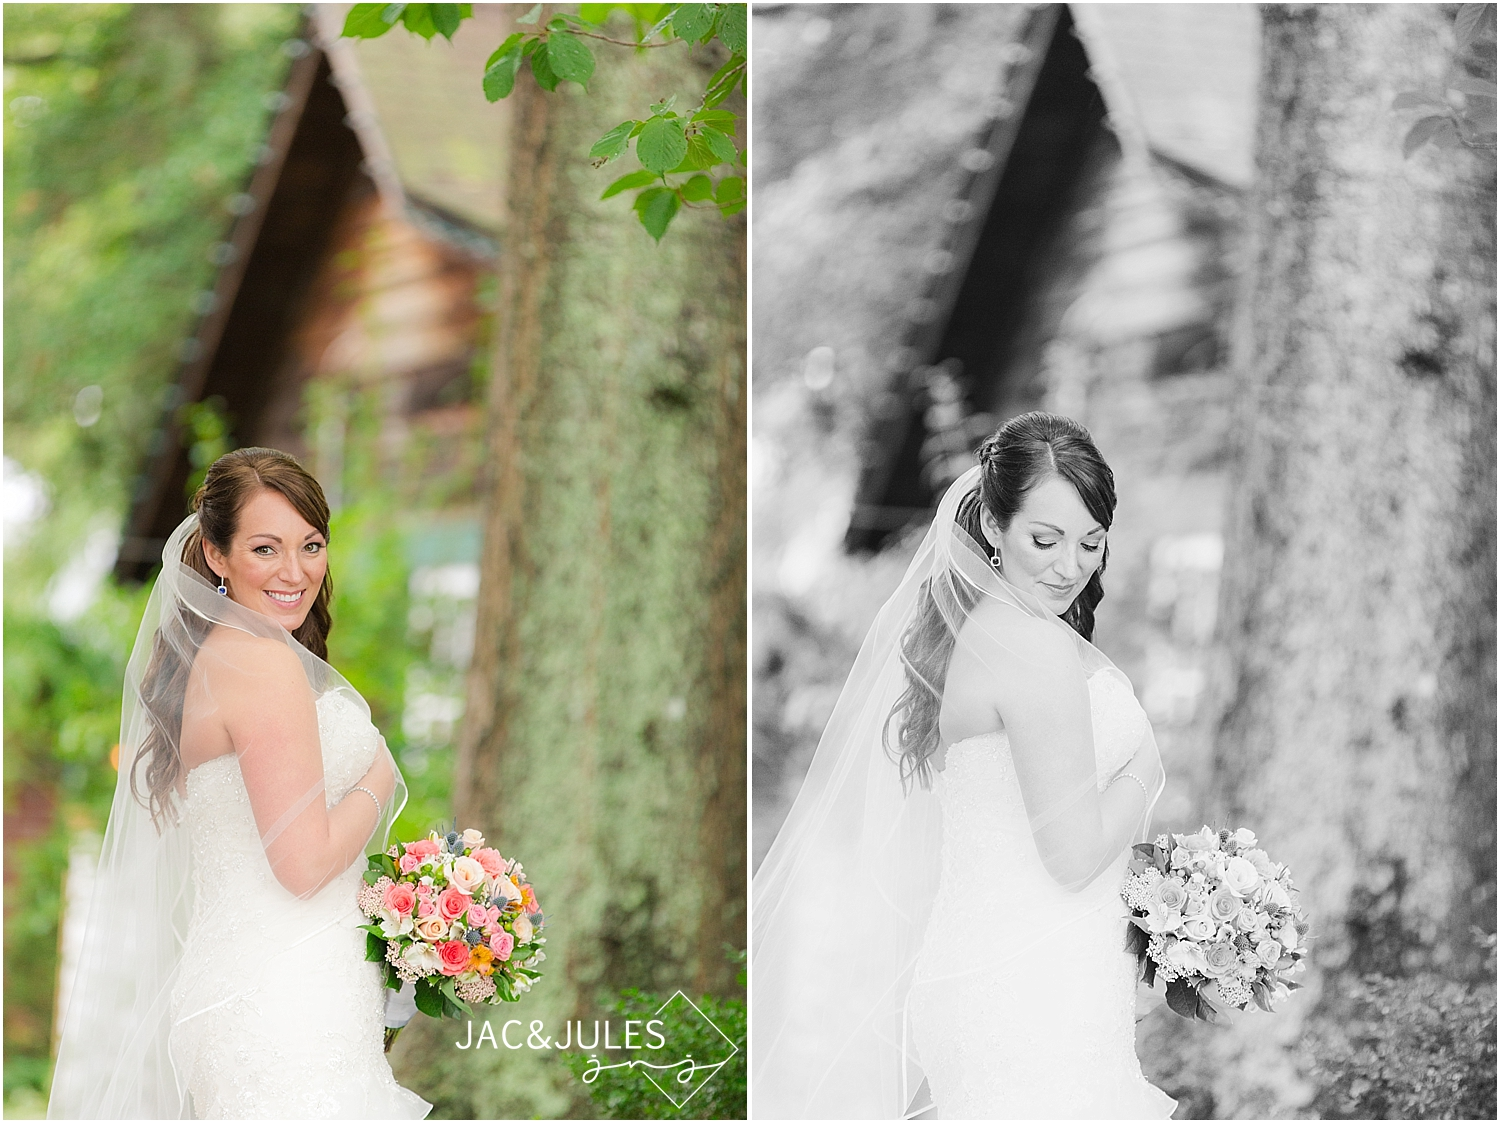 jacnjules photograph a bride on her wedding day in Smithville, NJ